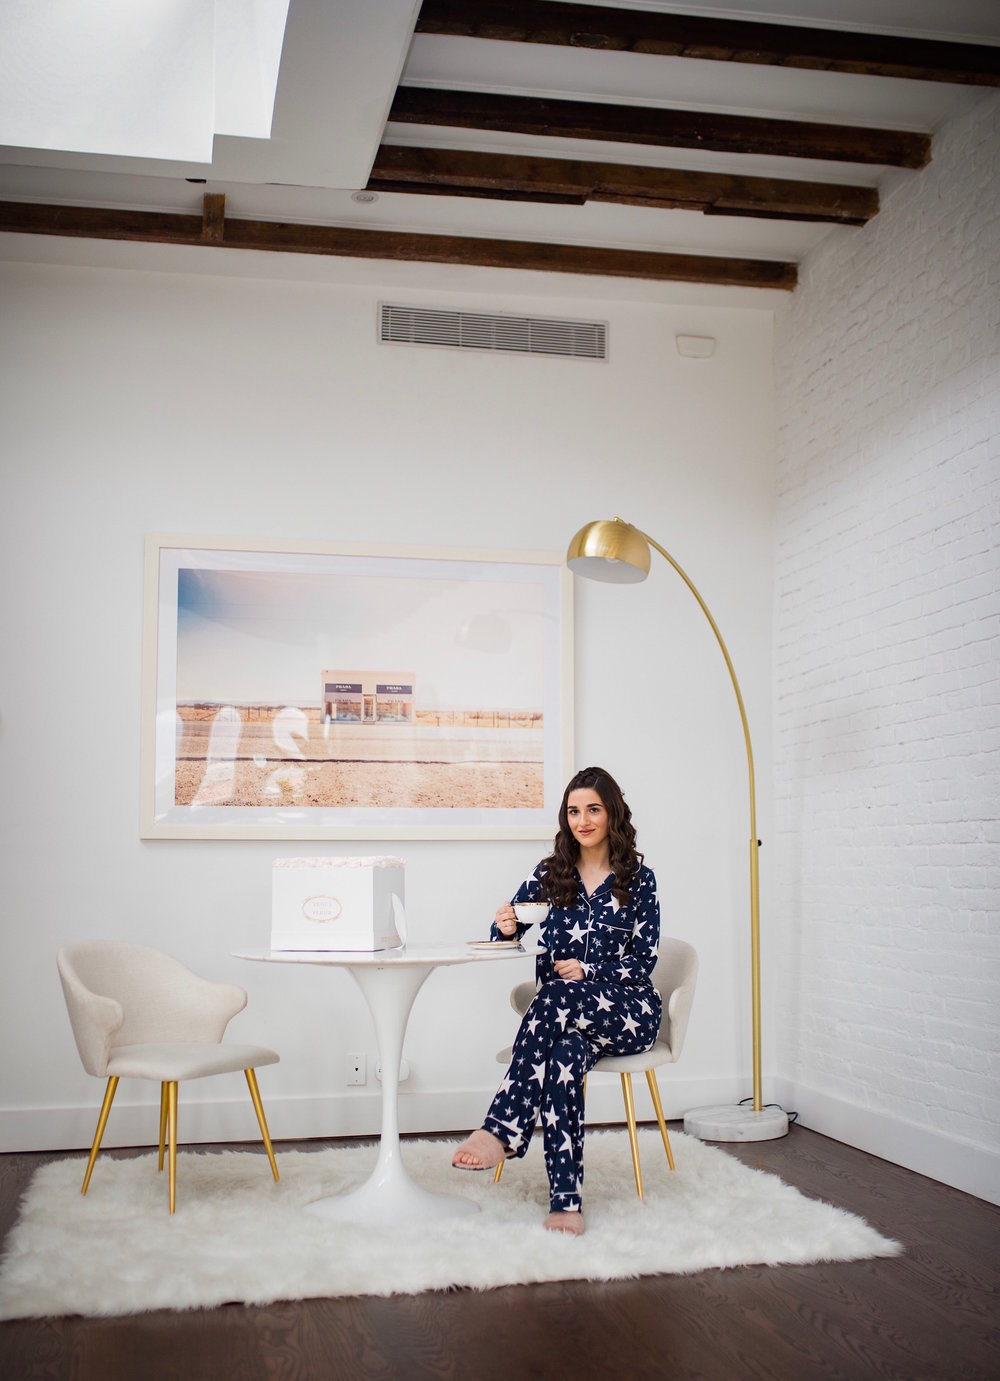 5 Tips For Becoming A Morning Person Navy Star Pajamas Esther Santer Fashion Blog NYC Street Style Blogger Outfit OOTD Trendy Shopping PJs Holiday ASOS Cute Wear Interior Beautiful Home Penthouse Wayfair Circle Mirror Venus Et Fleur Marble Art Table.jpg